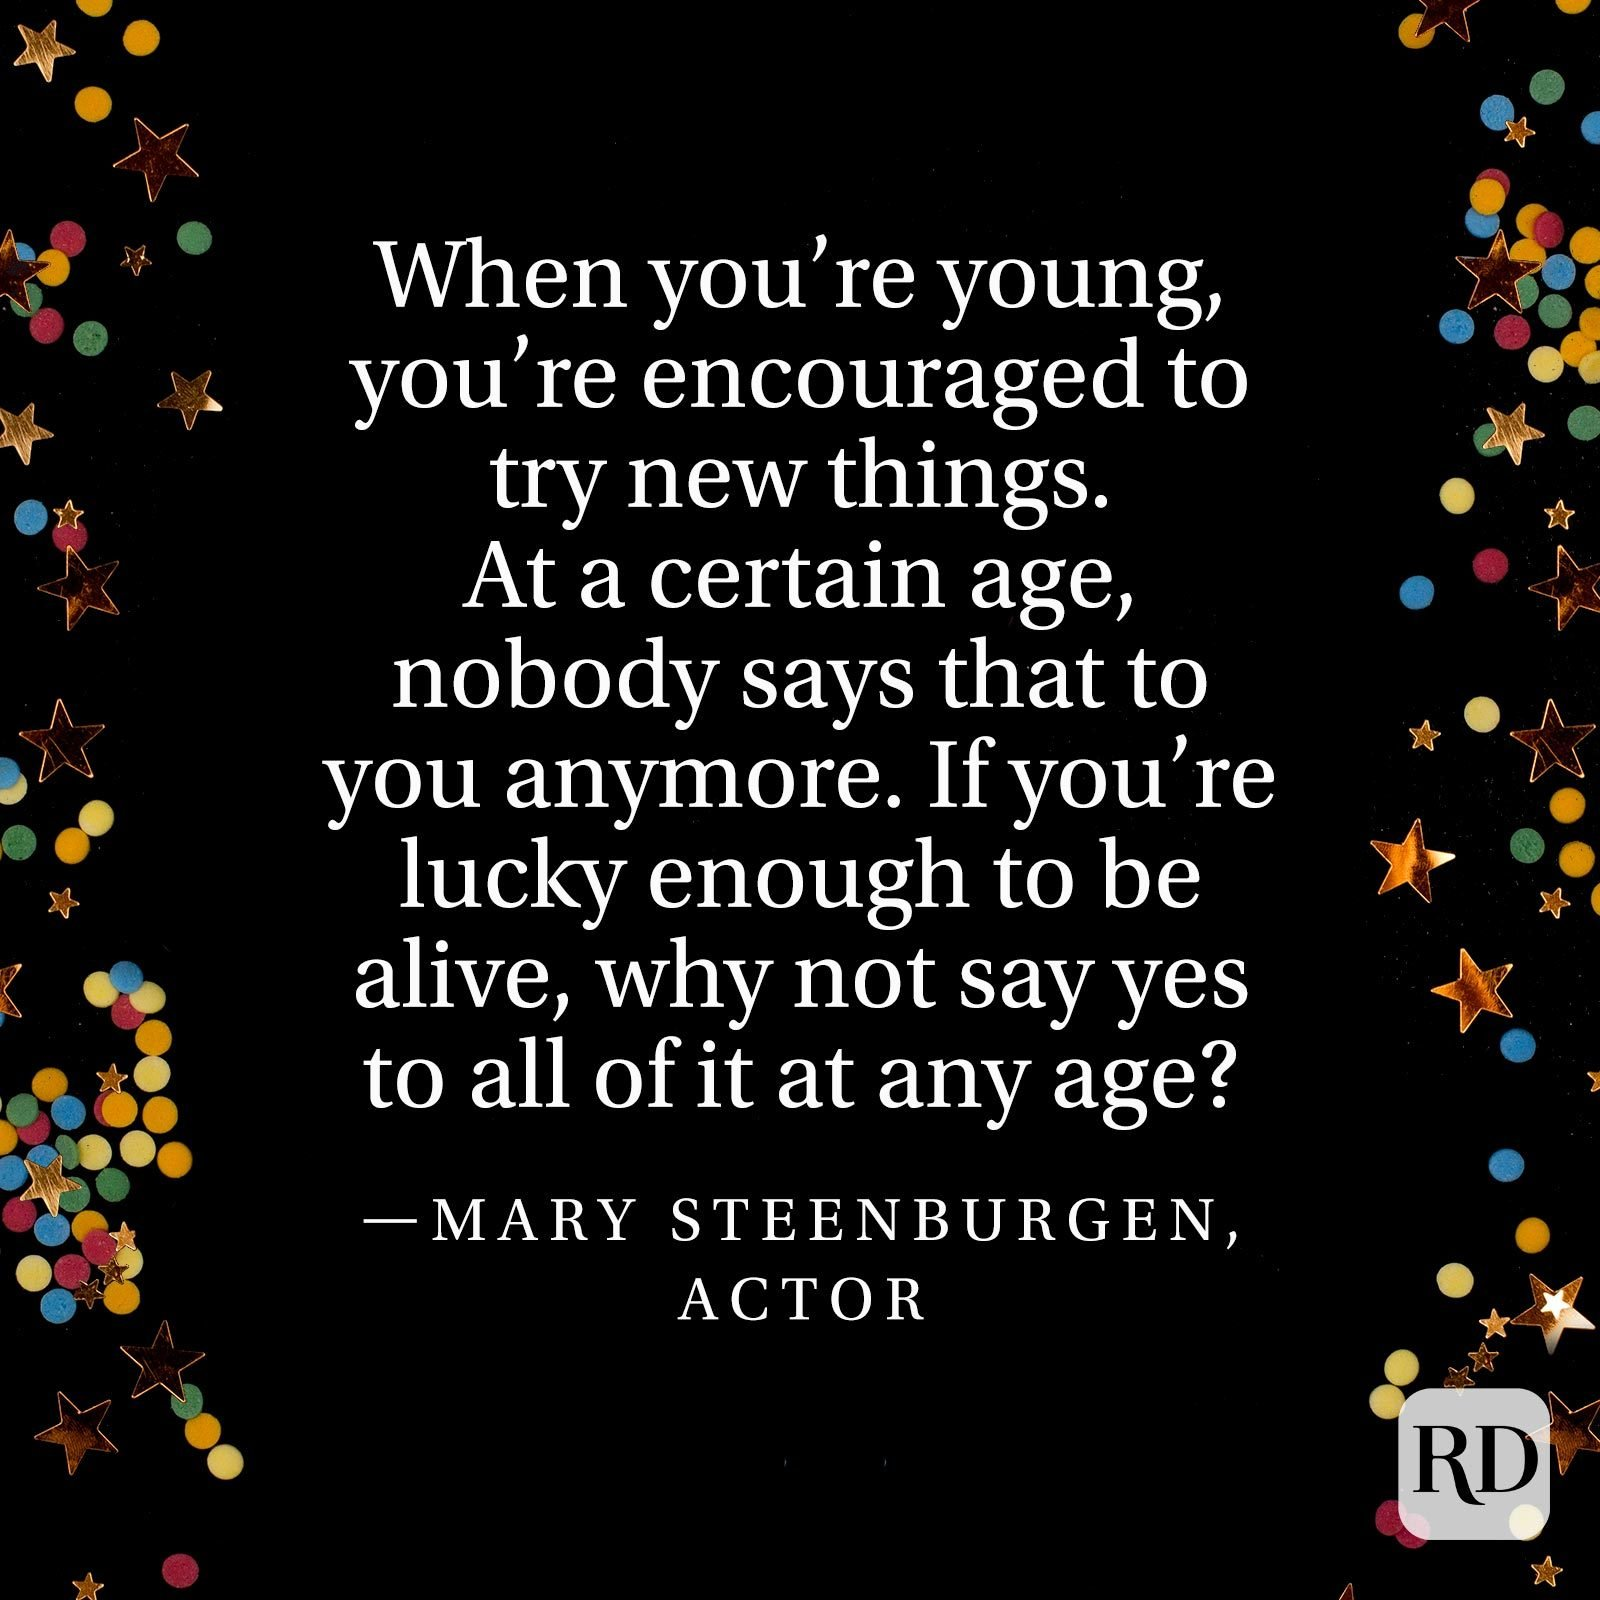 """When you're young, you're encouraged to try new things. At a certain age, nobody says that to you anymore. If you're lucky enough to be alive, why not say yes to all of it at any age?"" —Mary Steenburgen, actor"